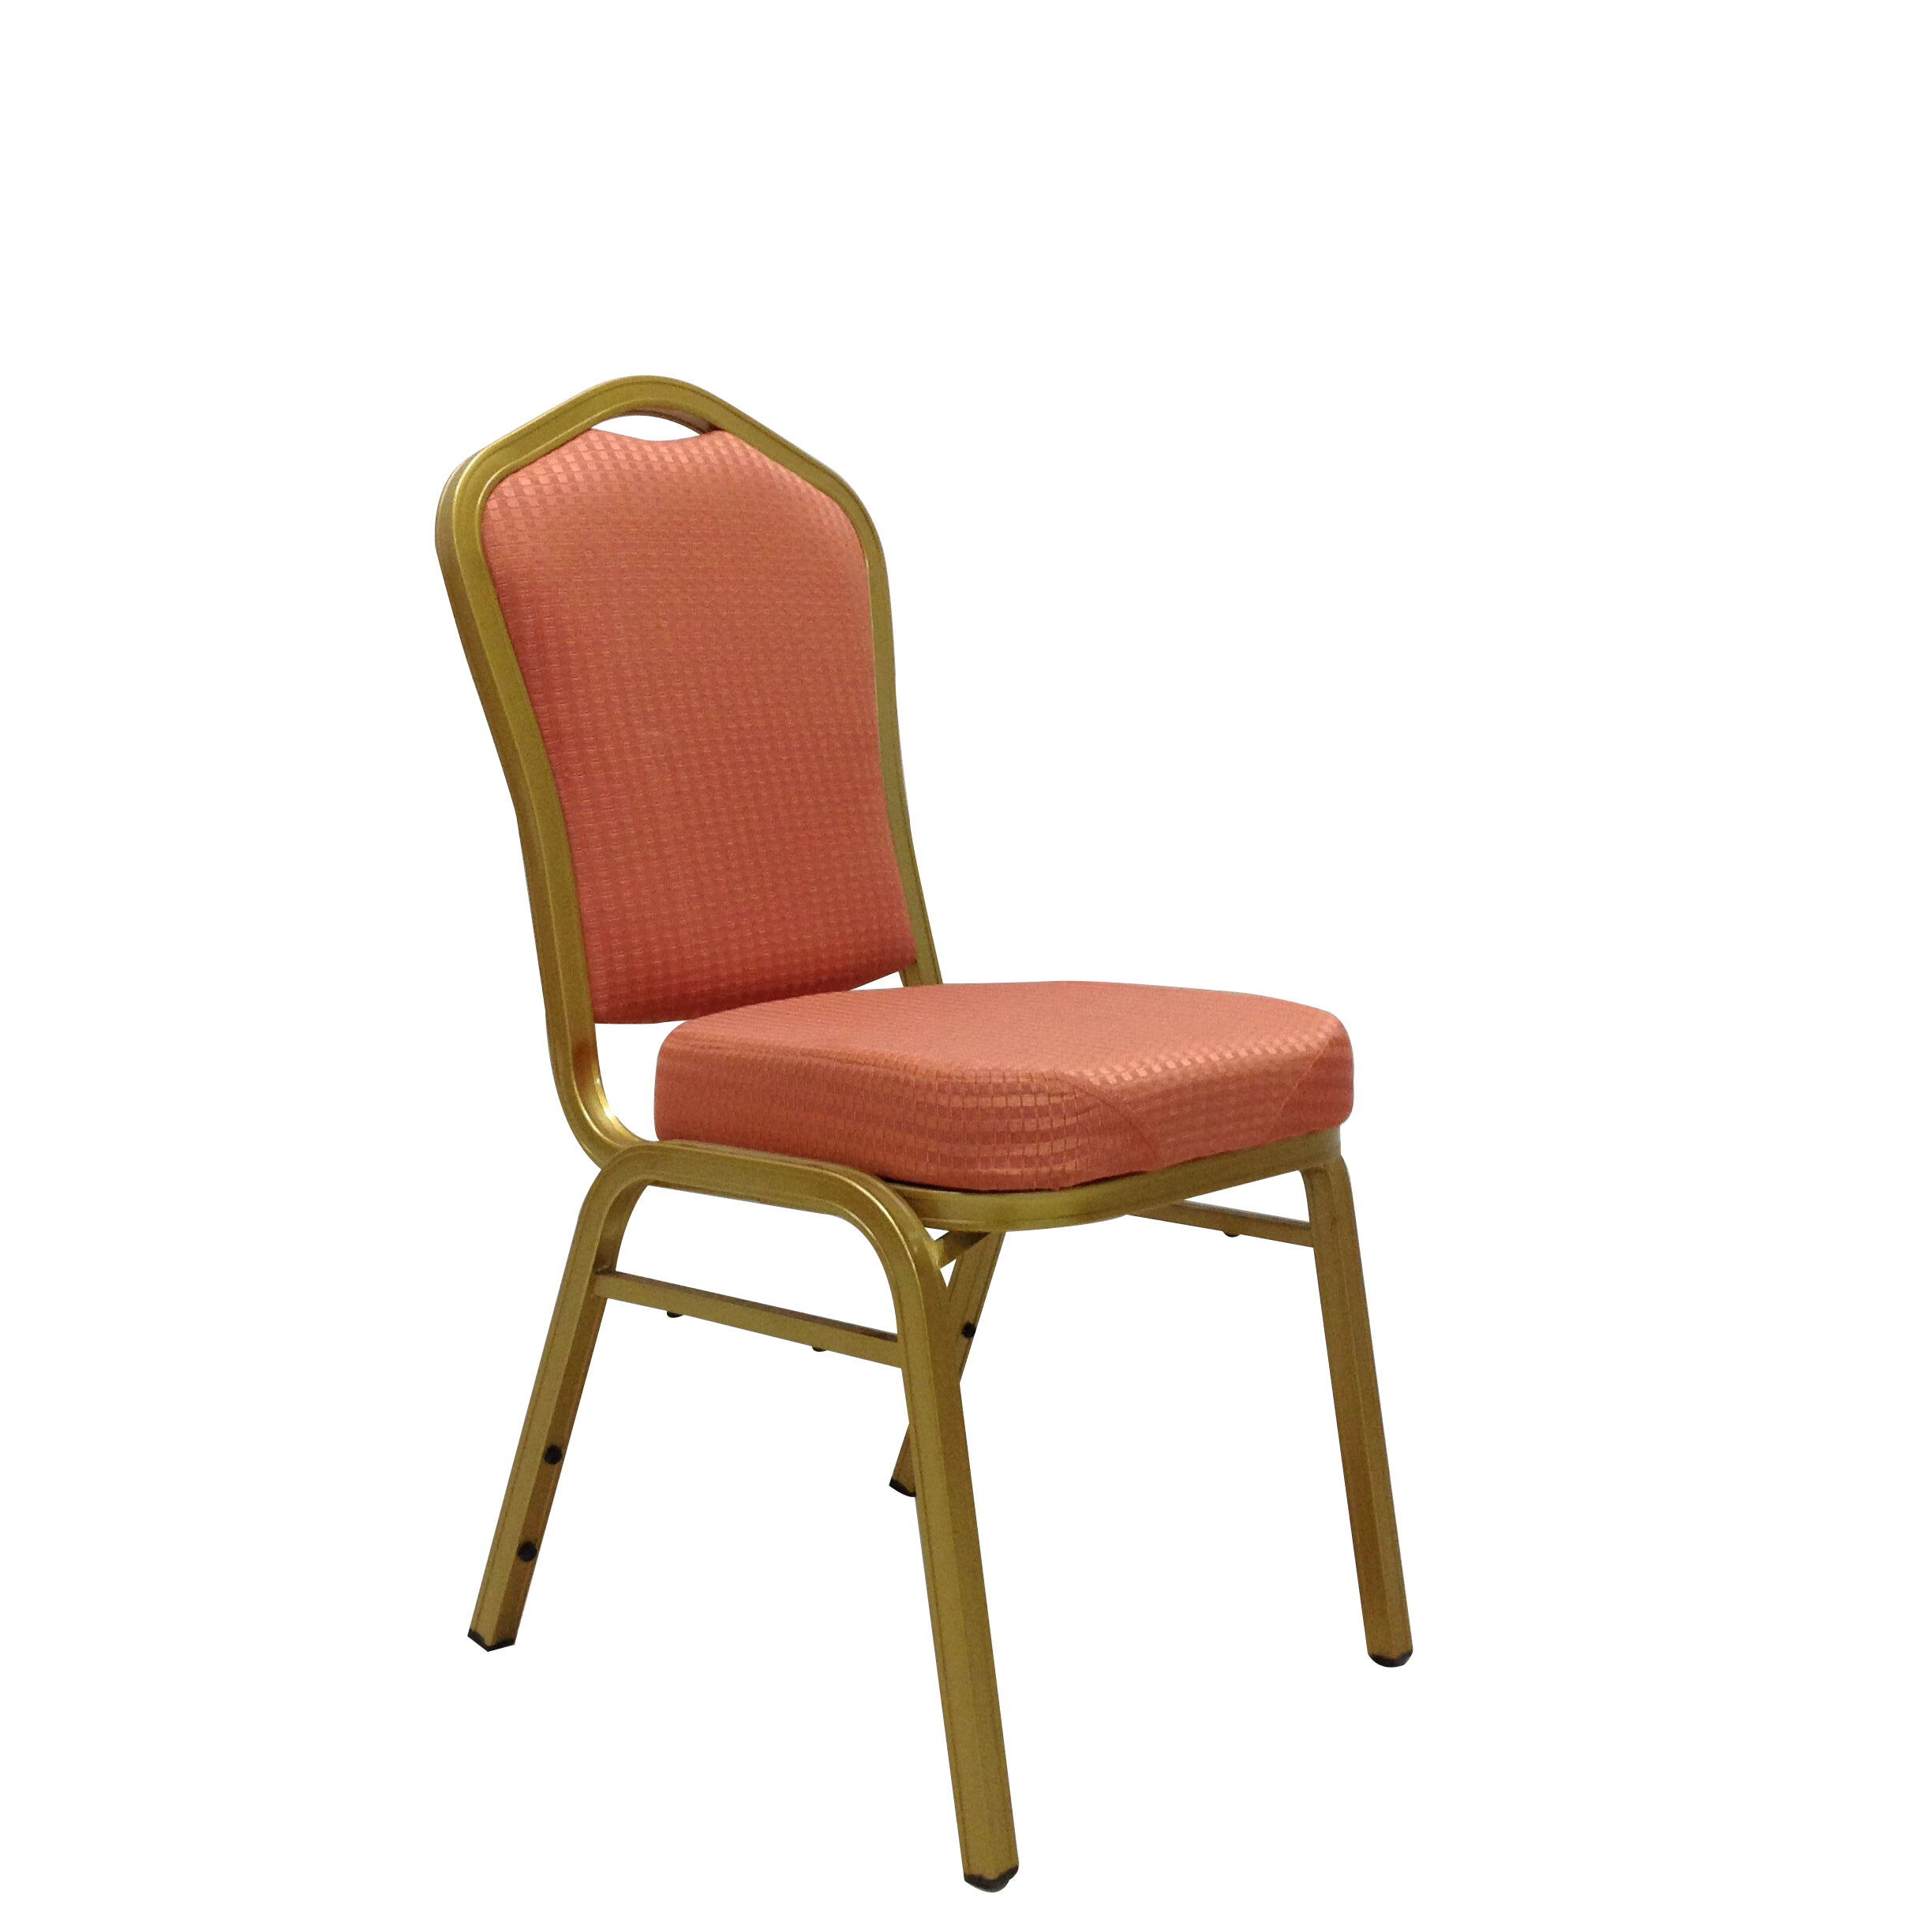 Reasonable price for Auditorium Chair Cad Block -